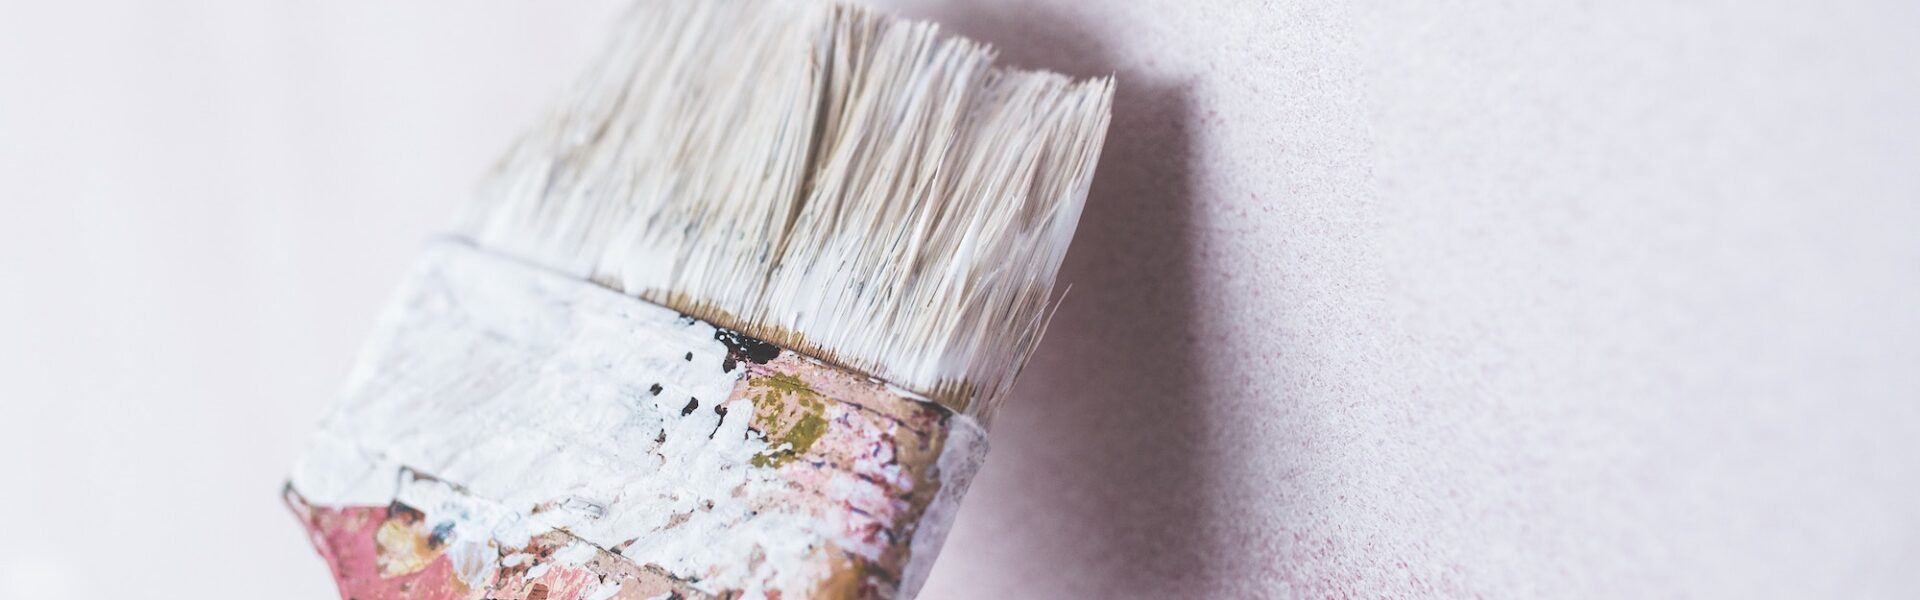 How to Find Experienced Painters in Roseville, CA   Home Interiors   Elle Blonde Luxury Lifestyle Destination Blog